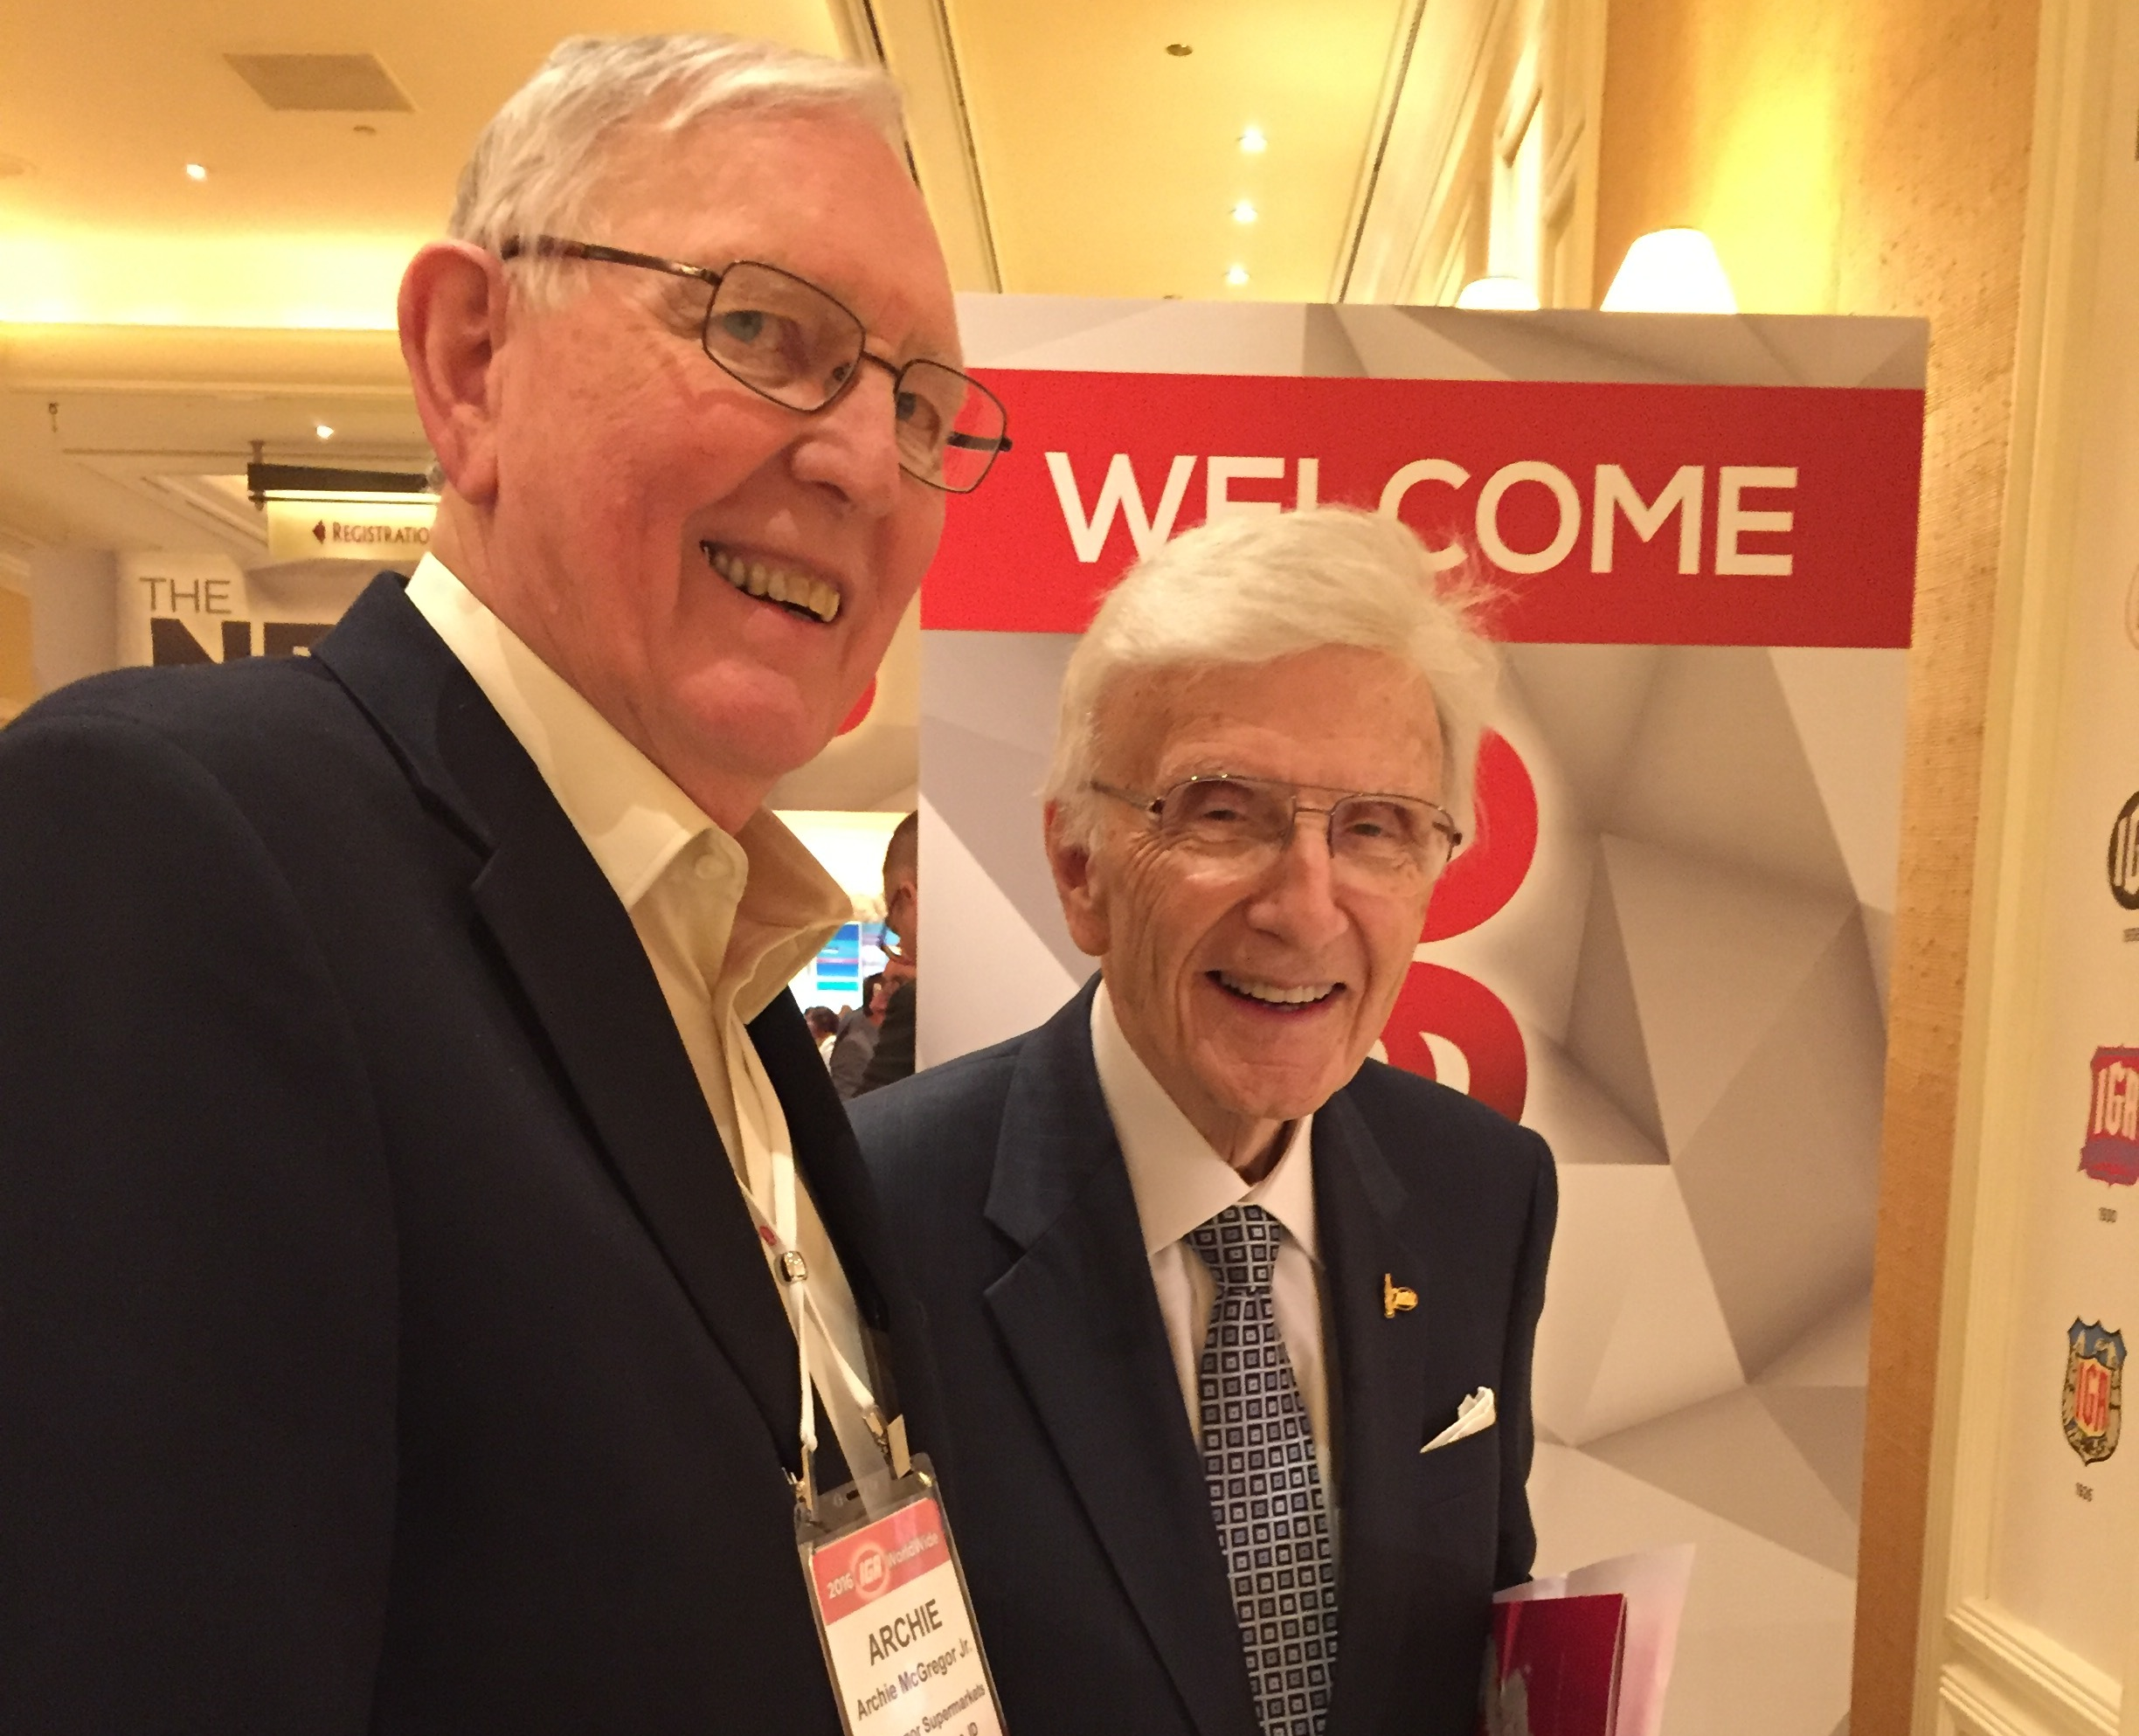 Dr. Tom Haggai, IGA chairman, right, with Archie McGregor, president of Archie's IGA in St. Maries, Idaho, and Dissmore's IGA in Pullman, Washington, at the 2016 IGA Global Rally this week in Las Vegas.